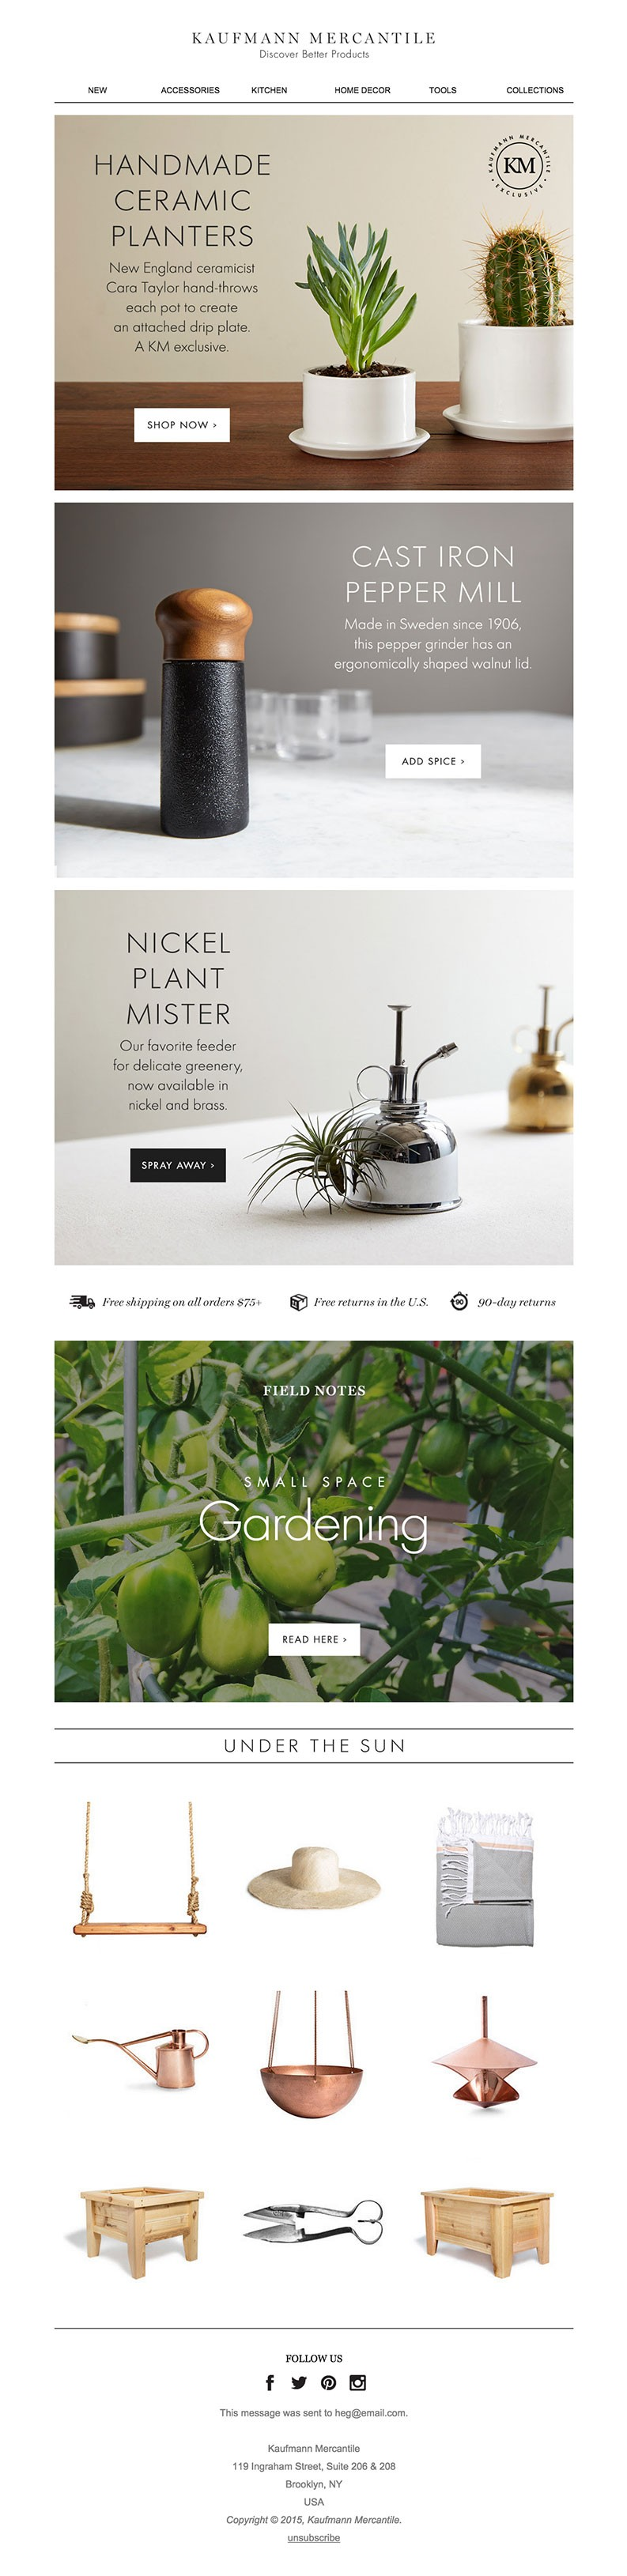 eCommerce email design inspiration